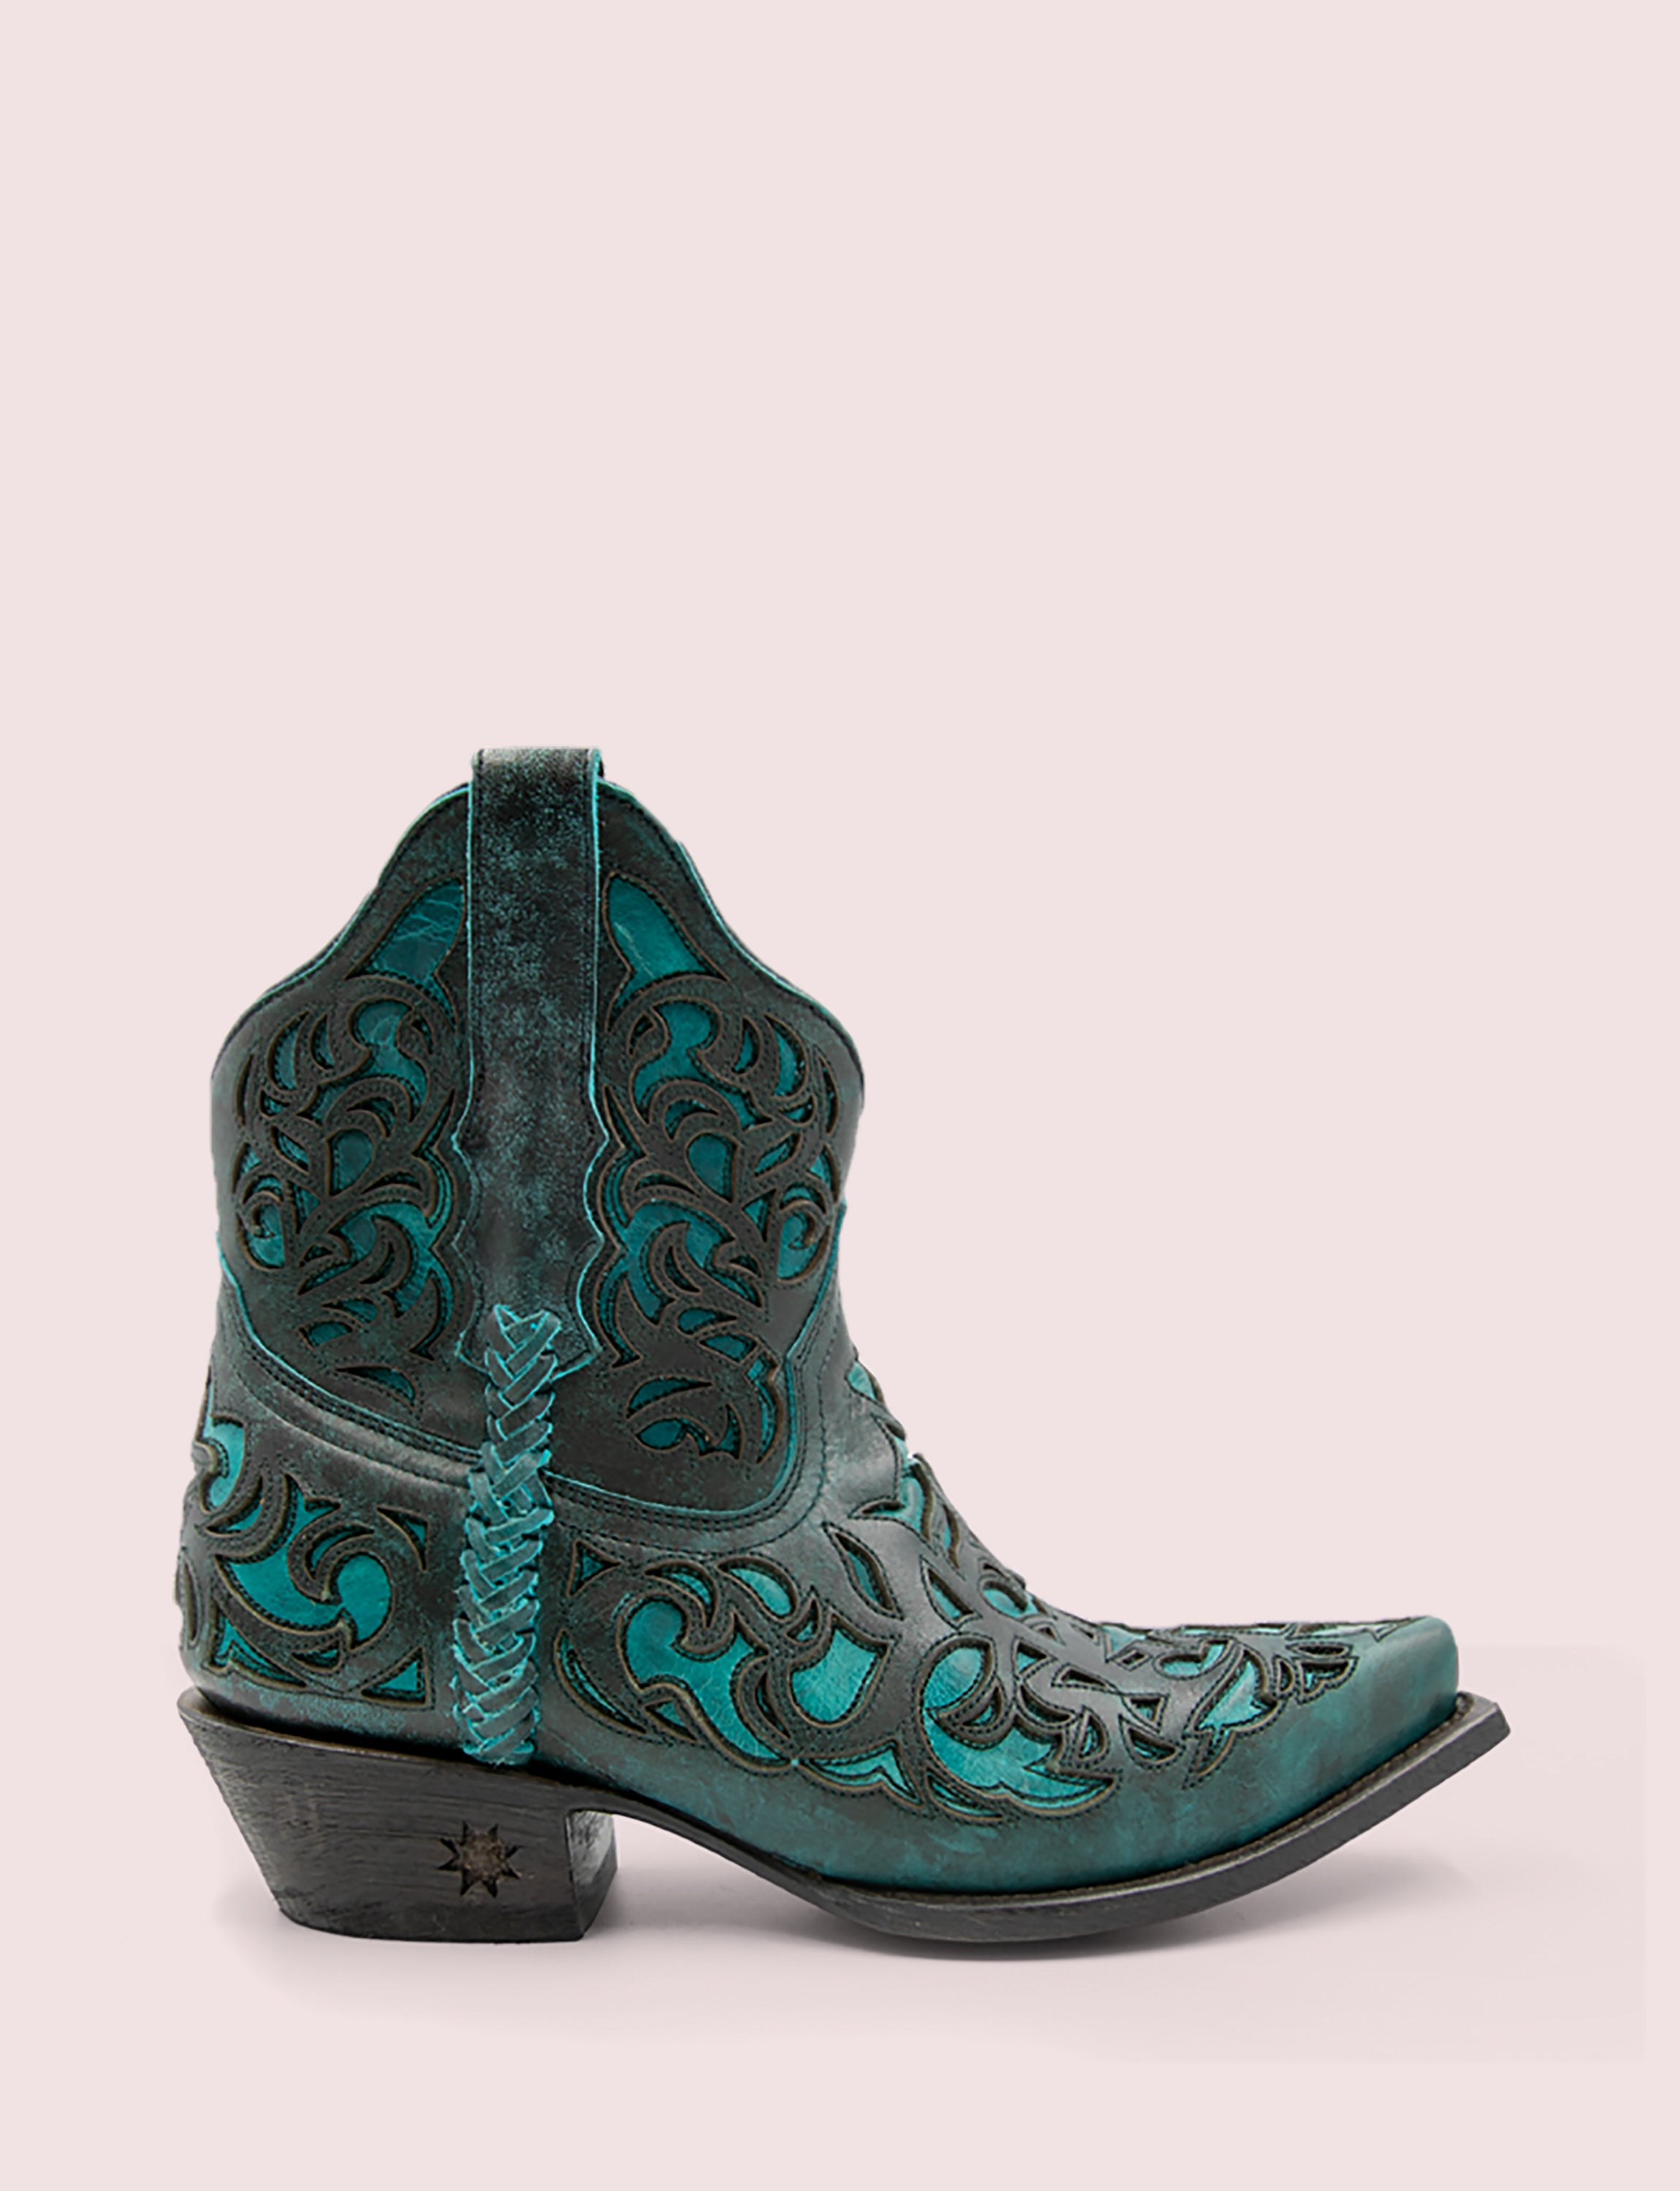 Terlingua | featured dark-teal-teal